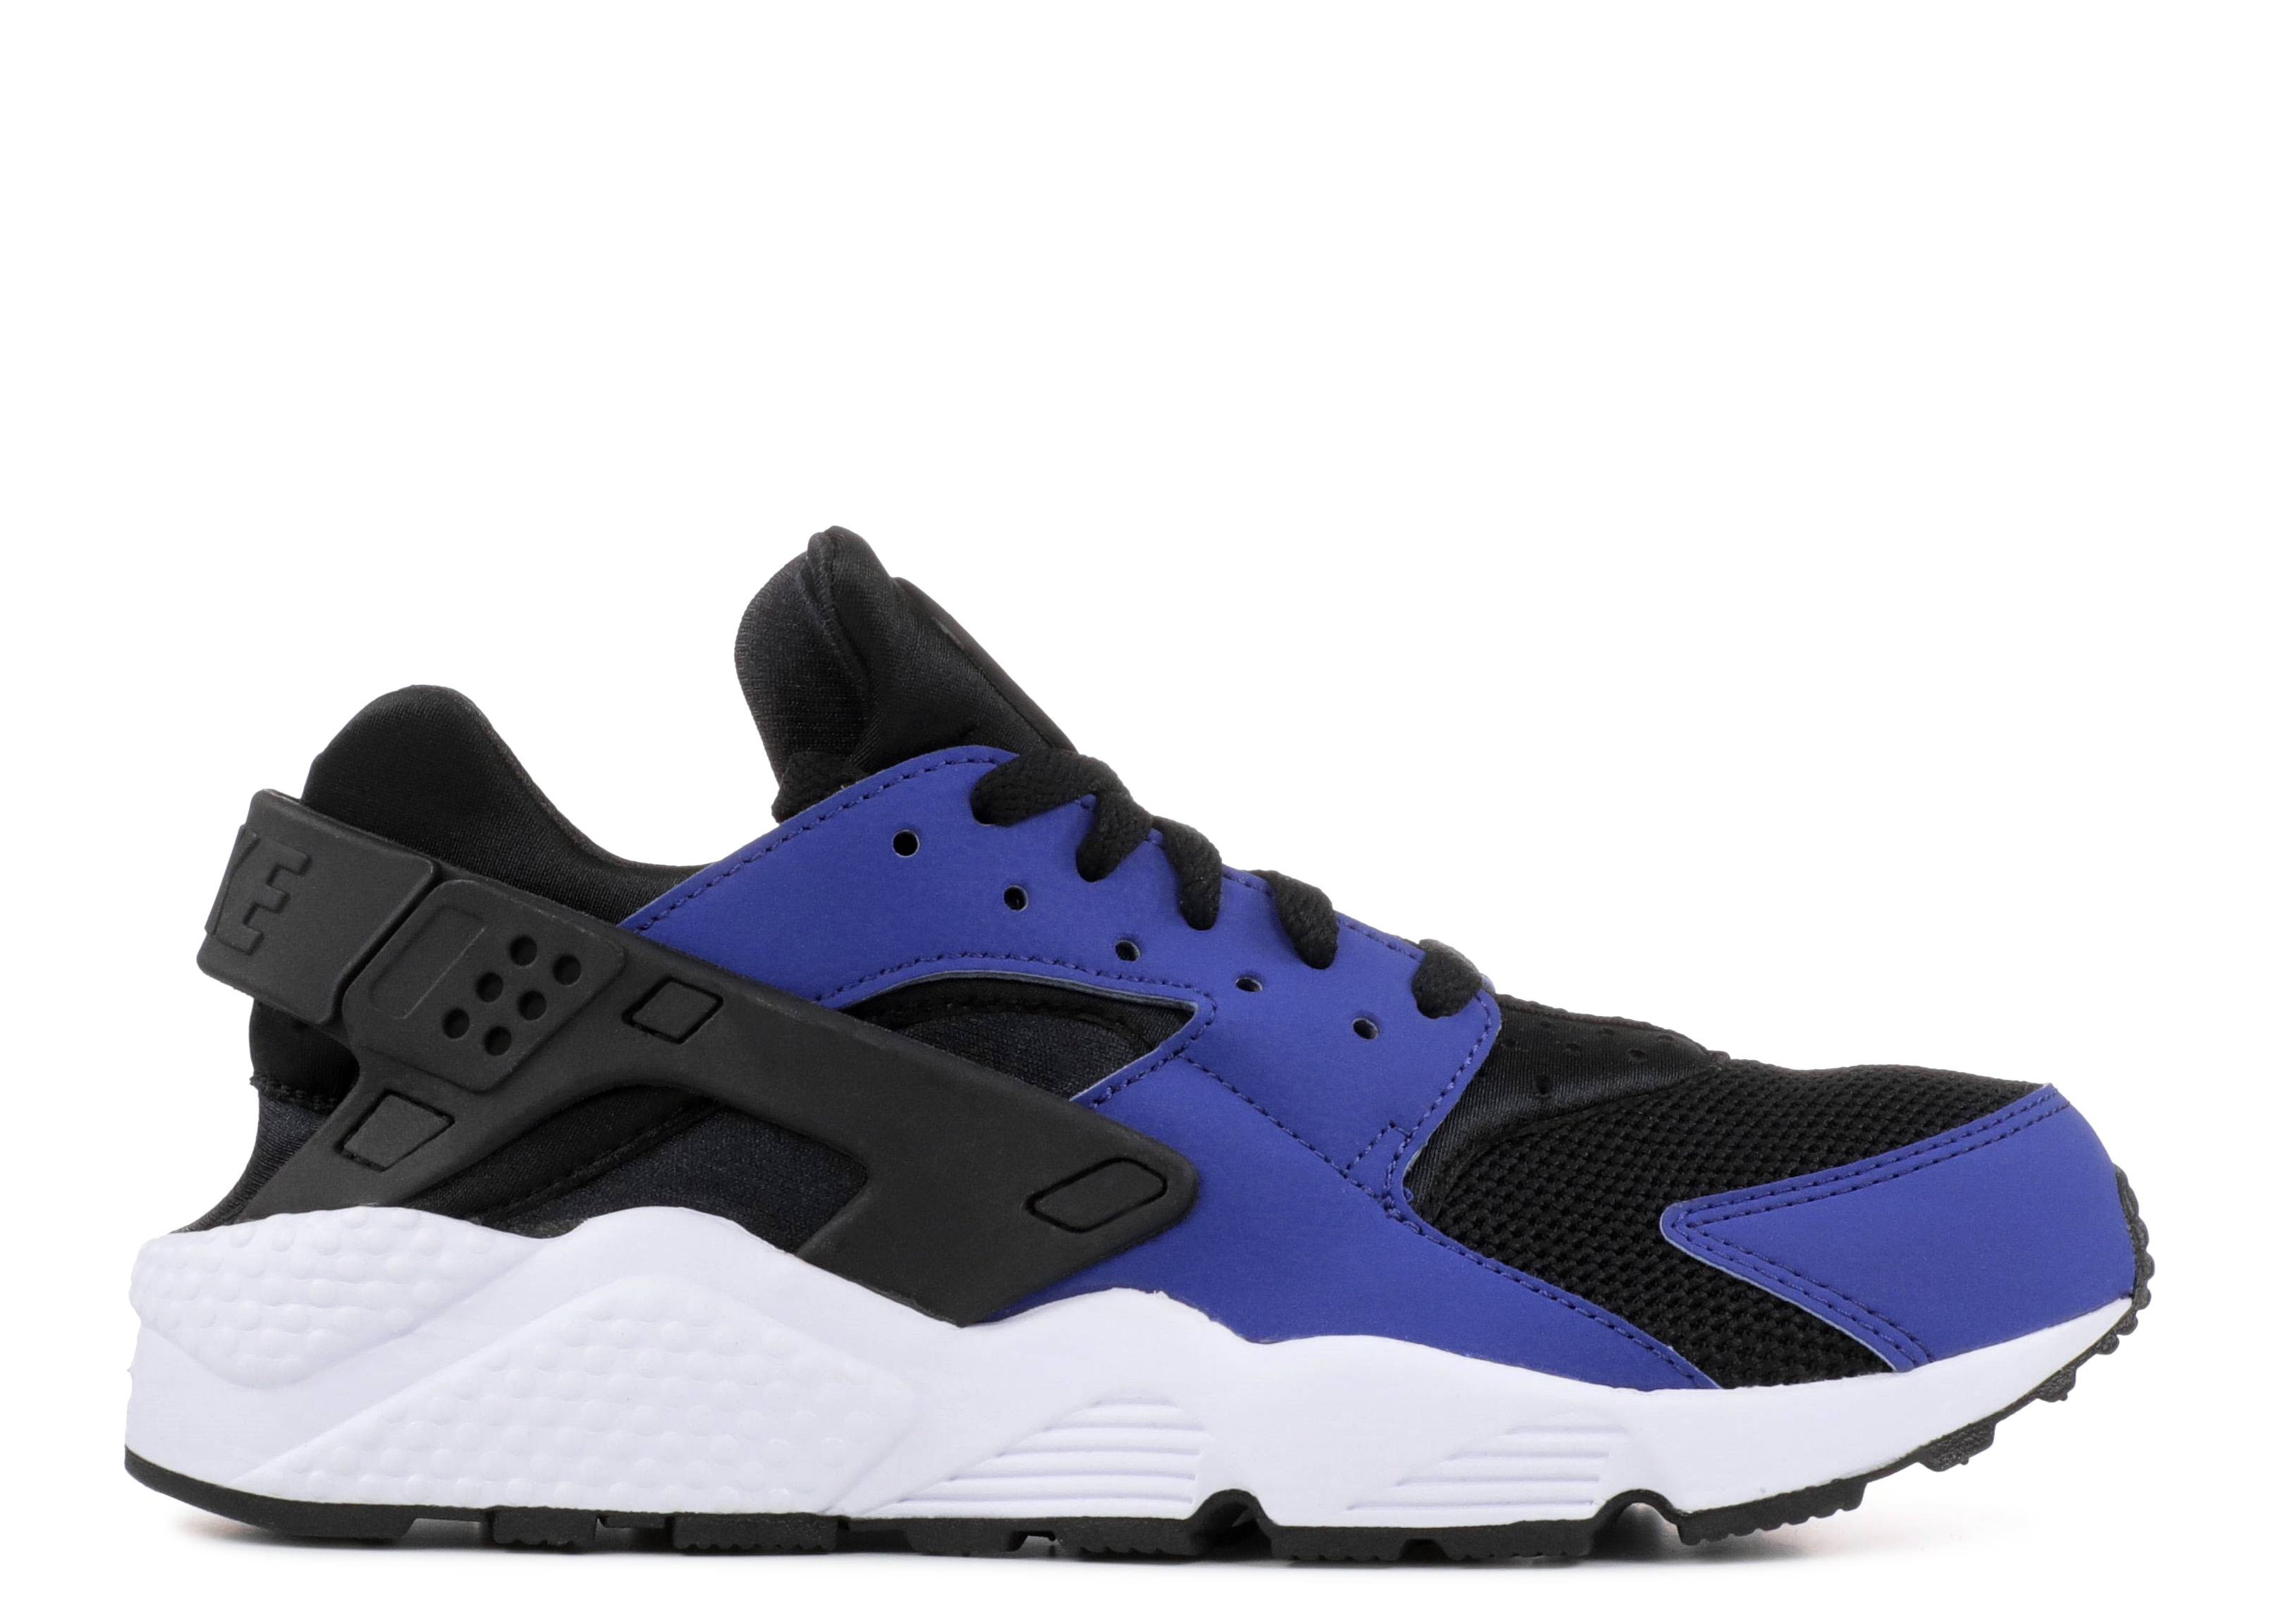 meet 7b67d 7e679 Nike Air Huarache - Nike - 318429 411 - deep royal blue ...